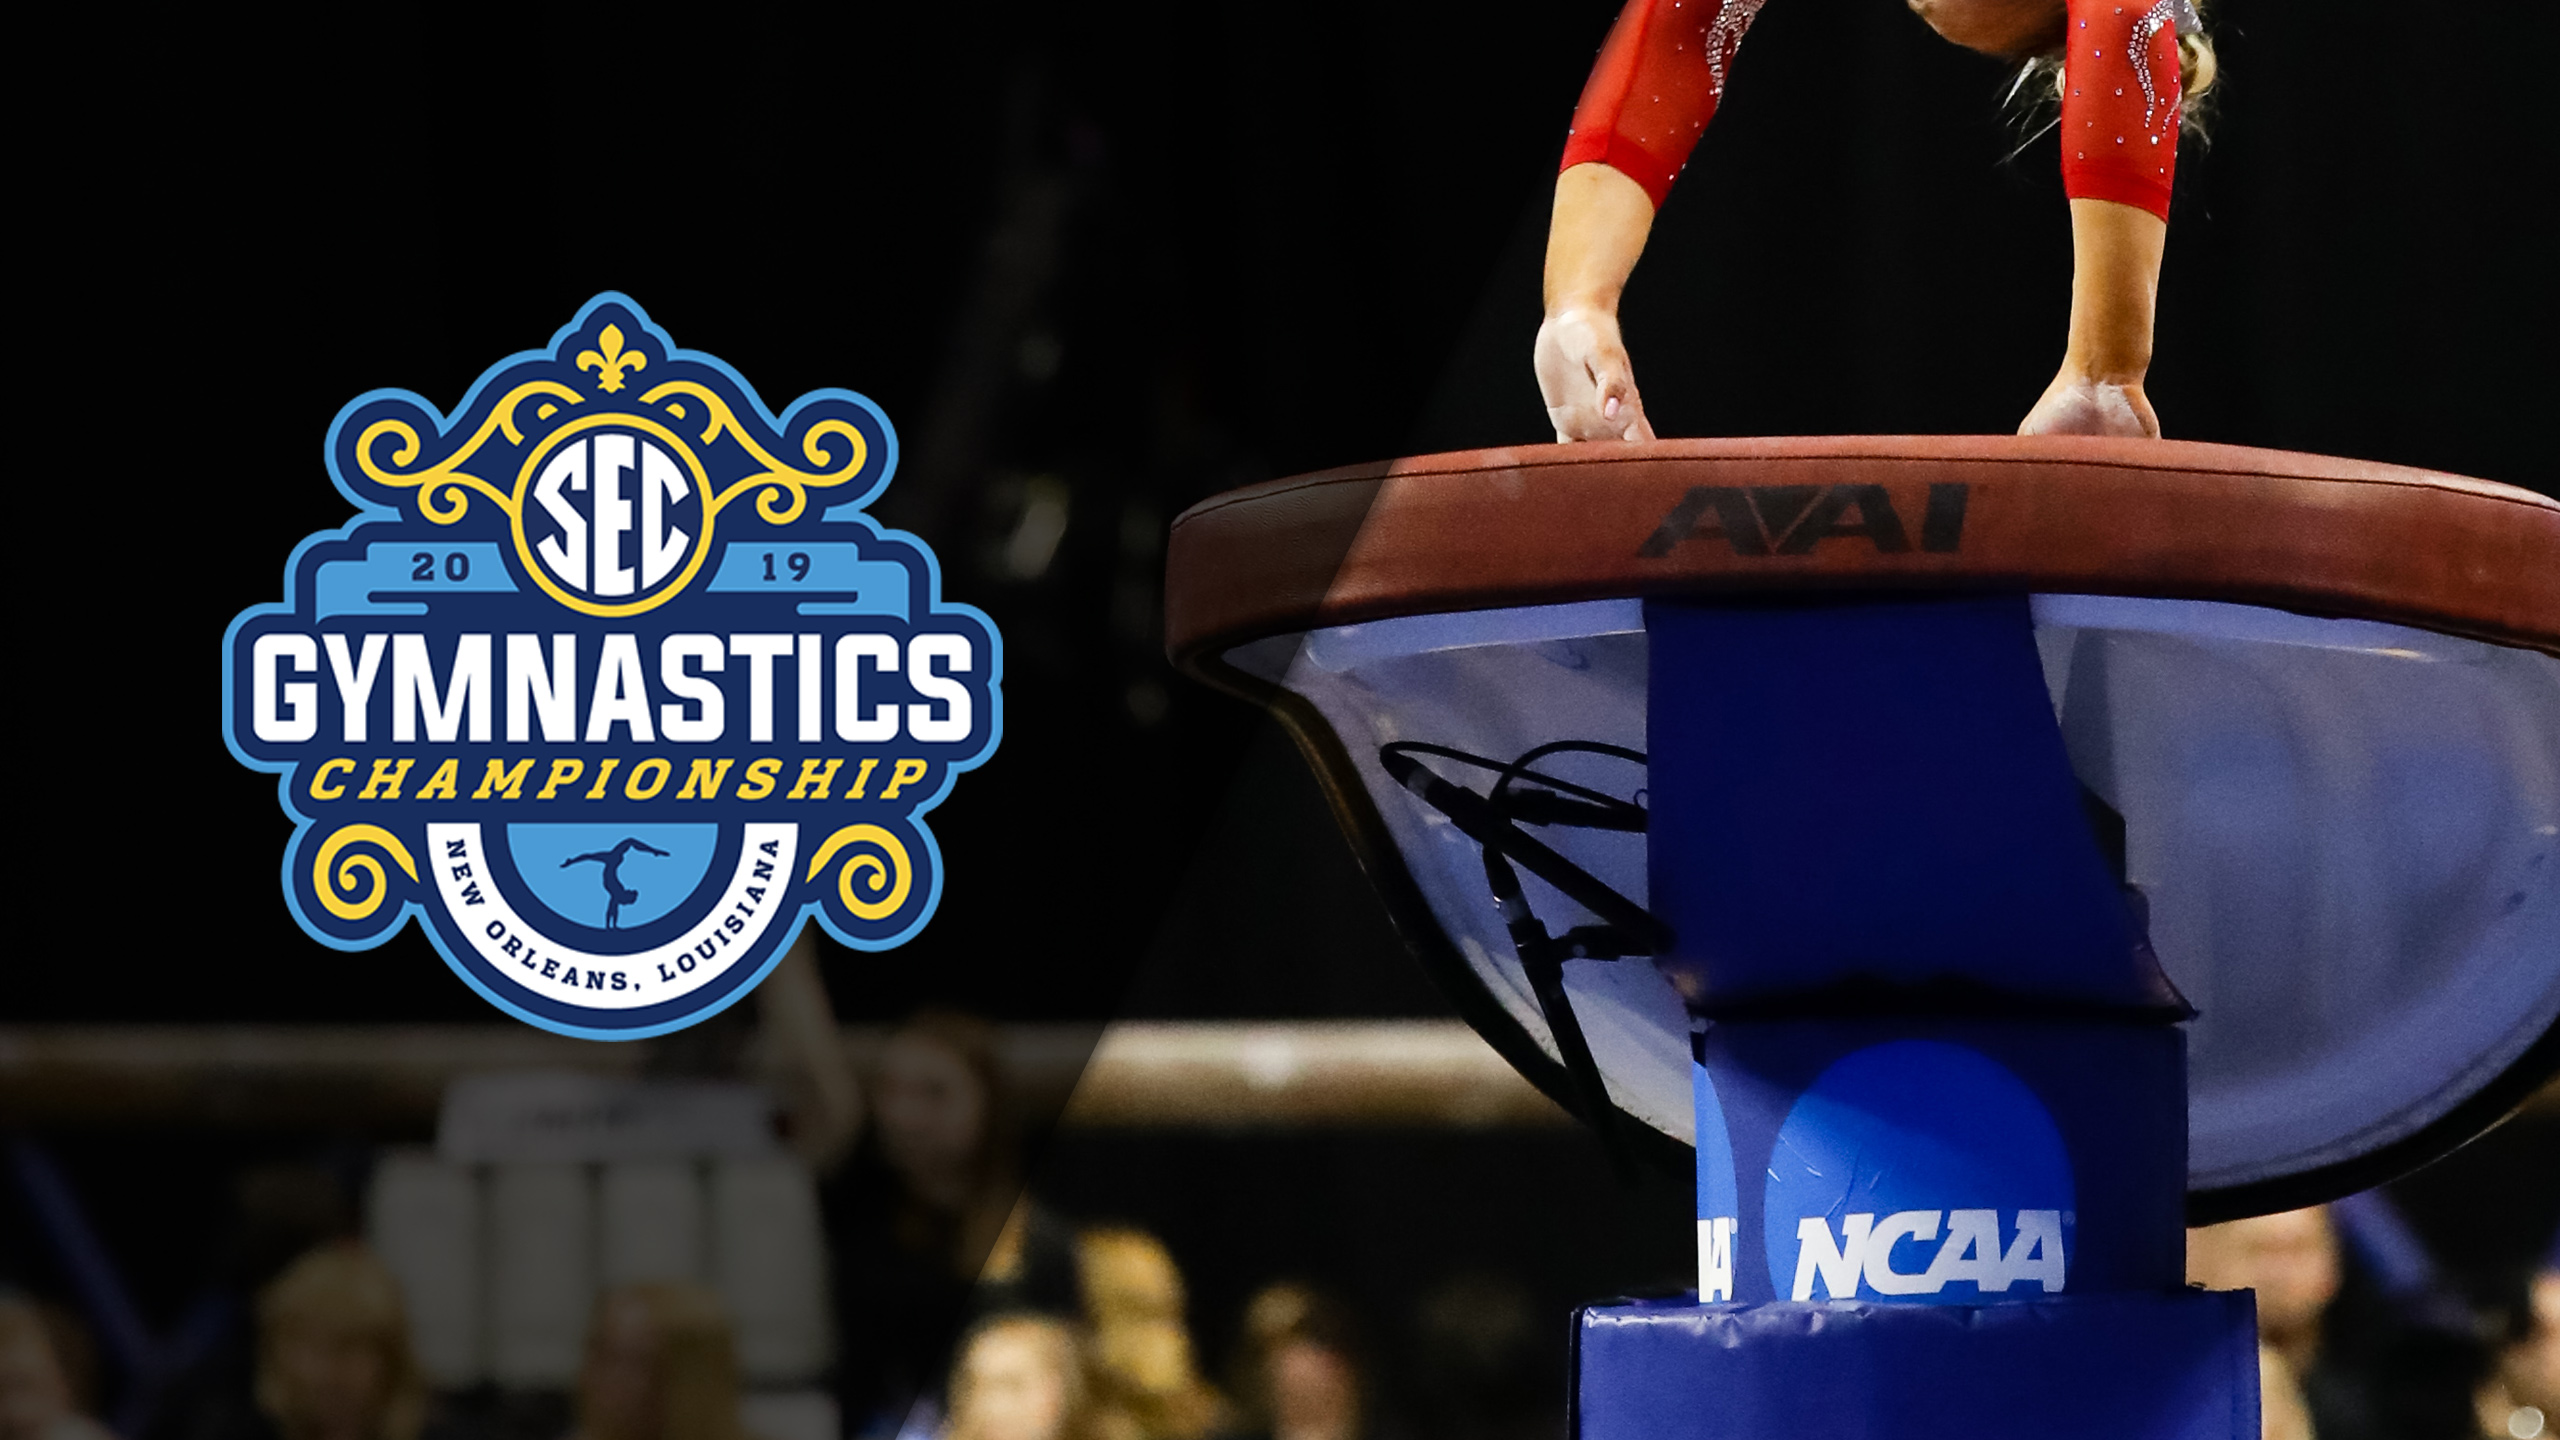 SEC Gymnastics Championship - Beam (Evening Session)